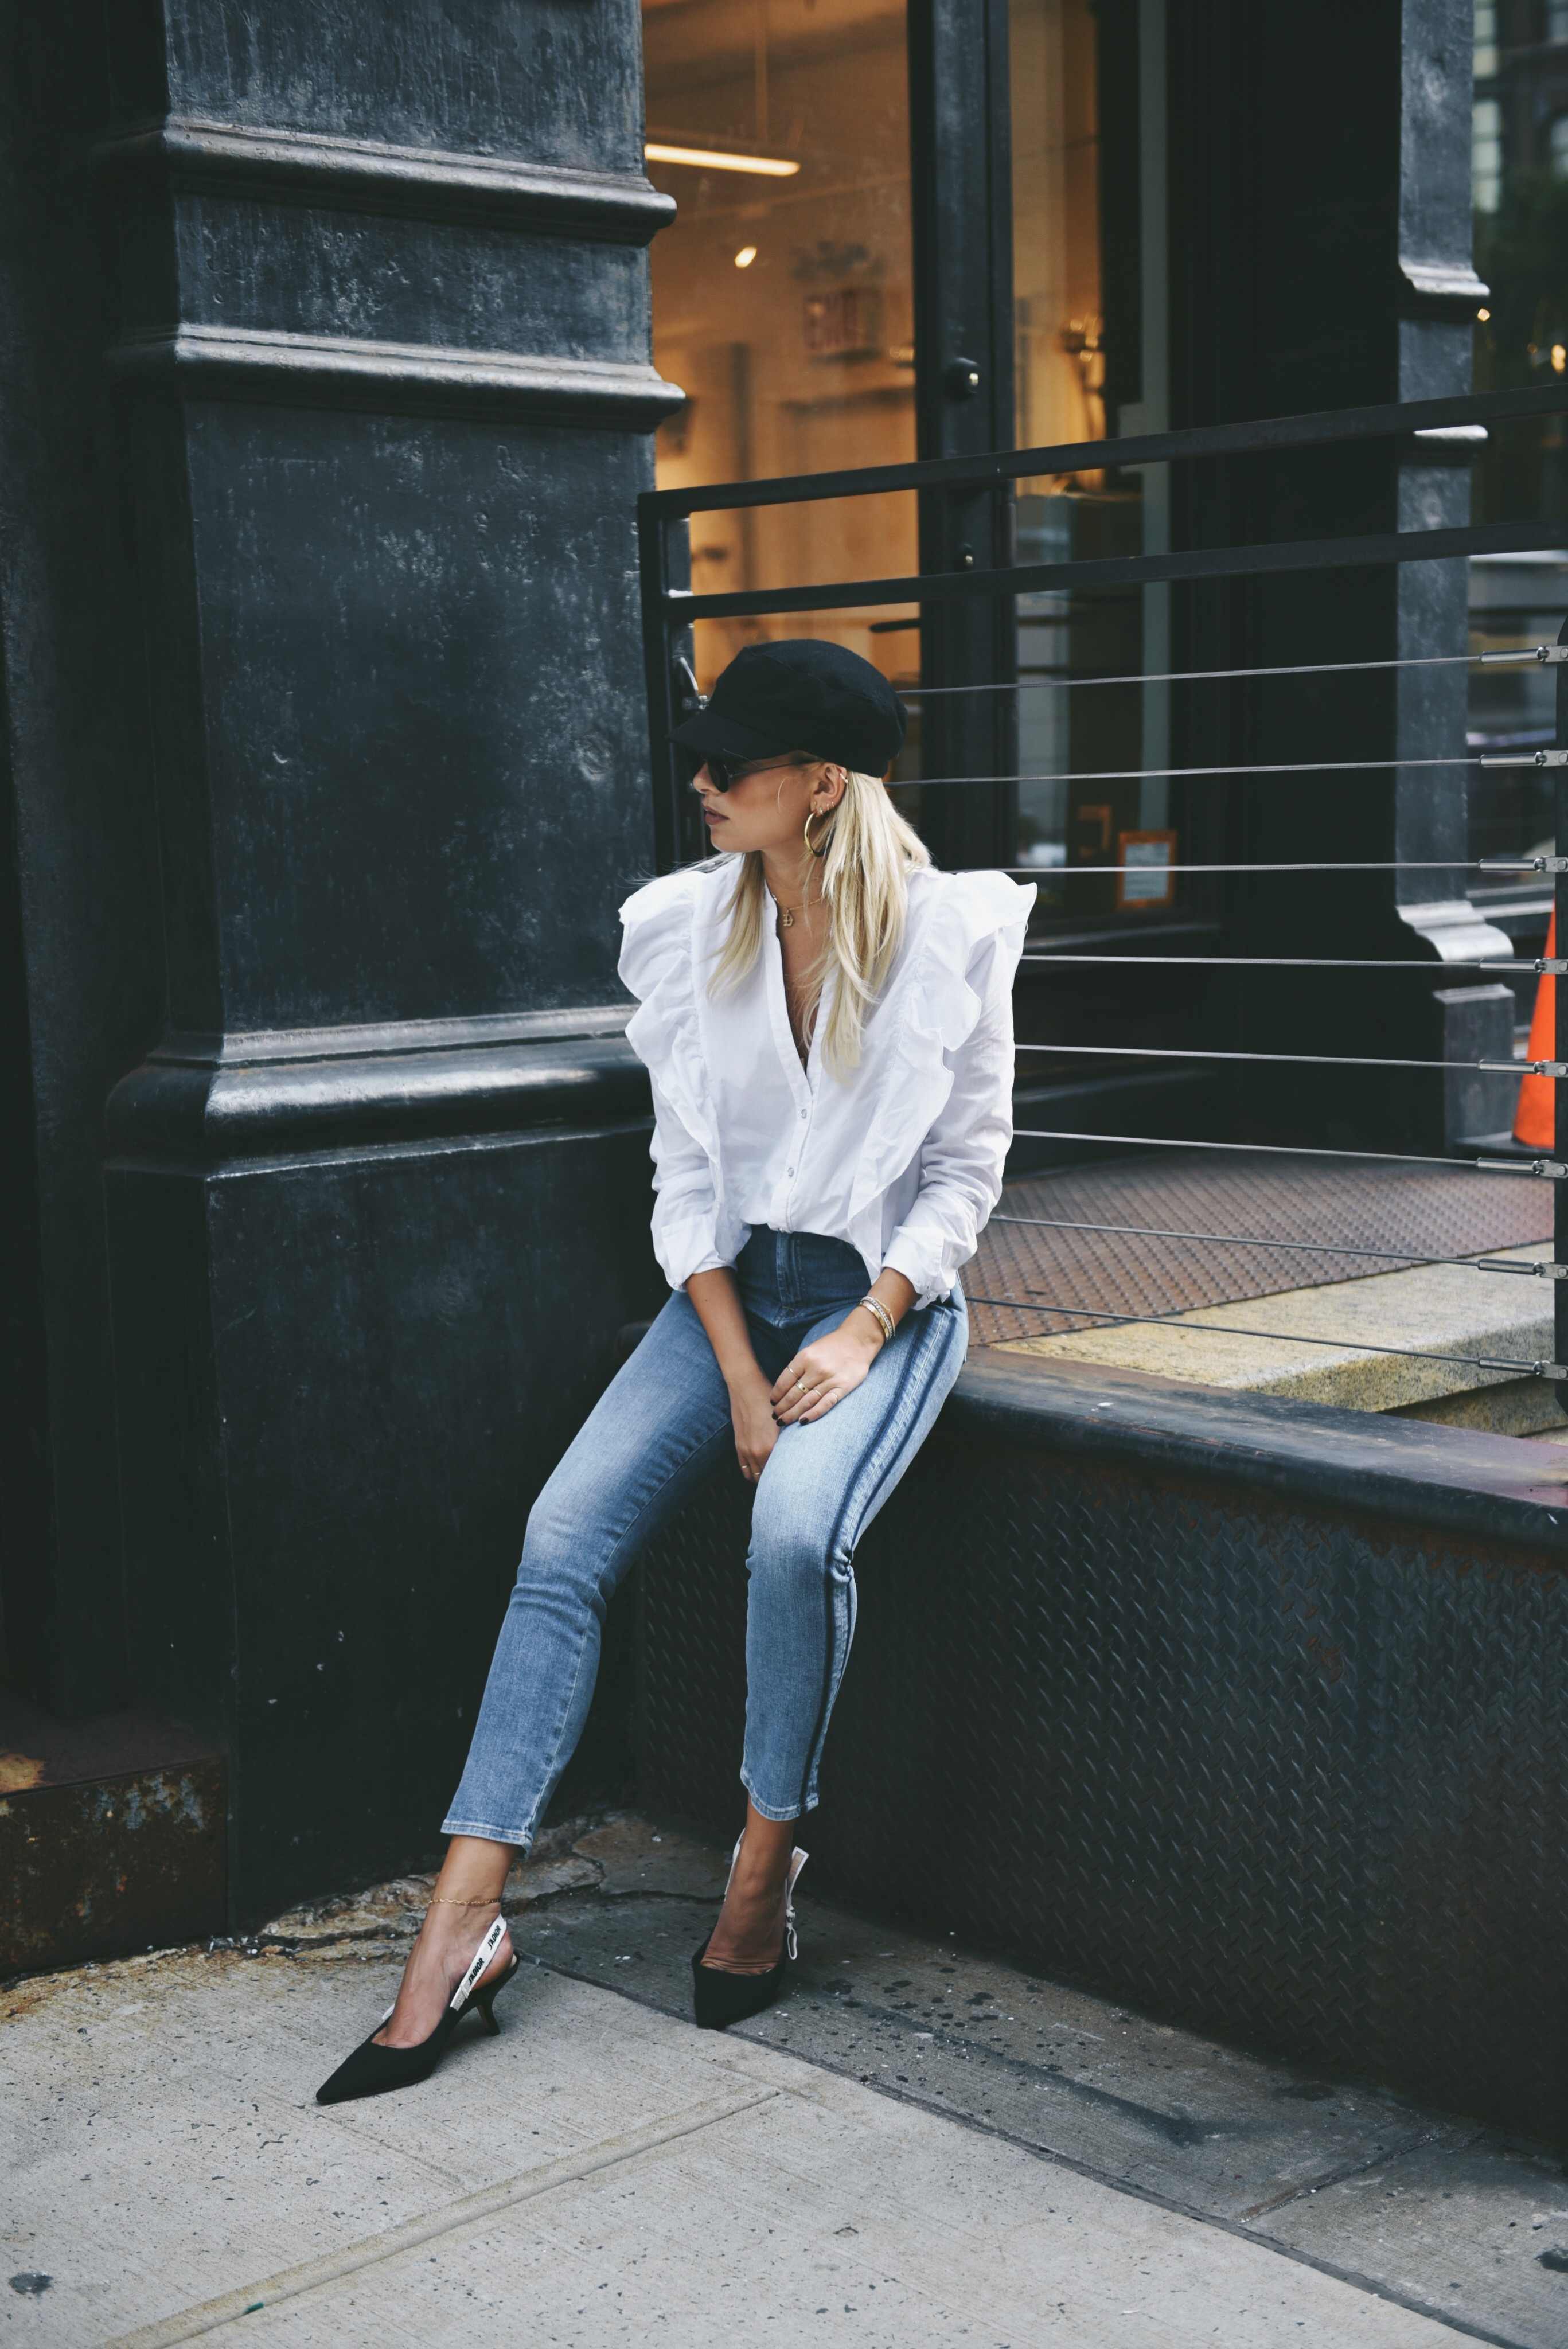 Blogger Danielle Bernstein's New Clothing Collaboration Has Everything We Need for Fall